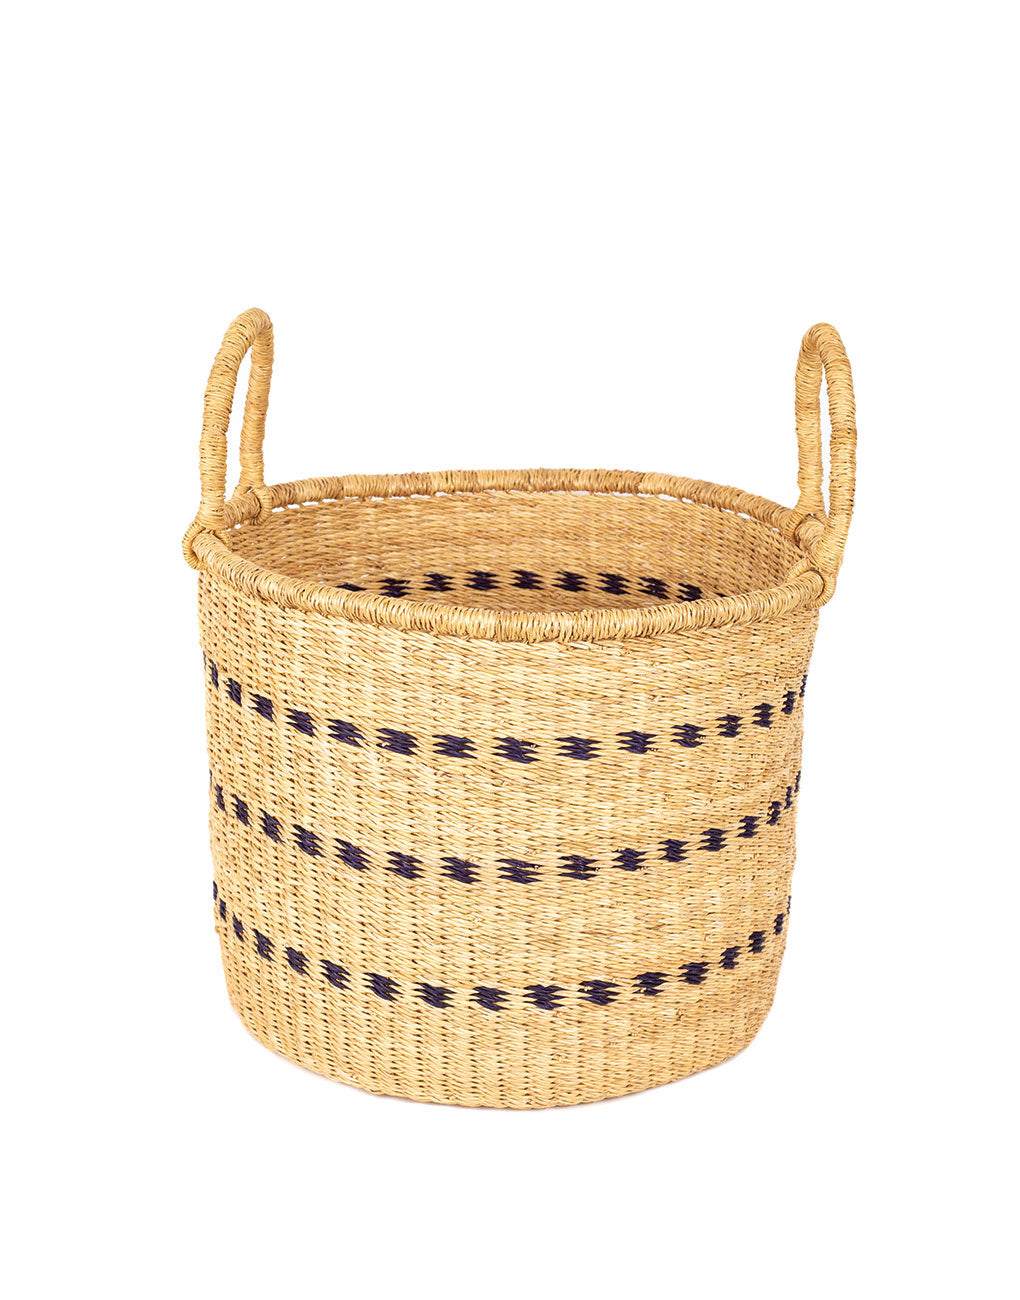 Small Striped Storage Basket - Black | The Little Market